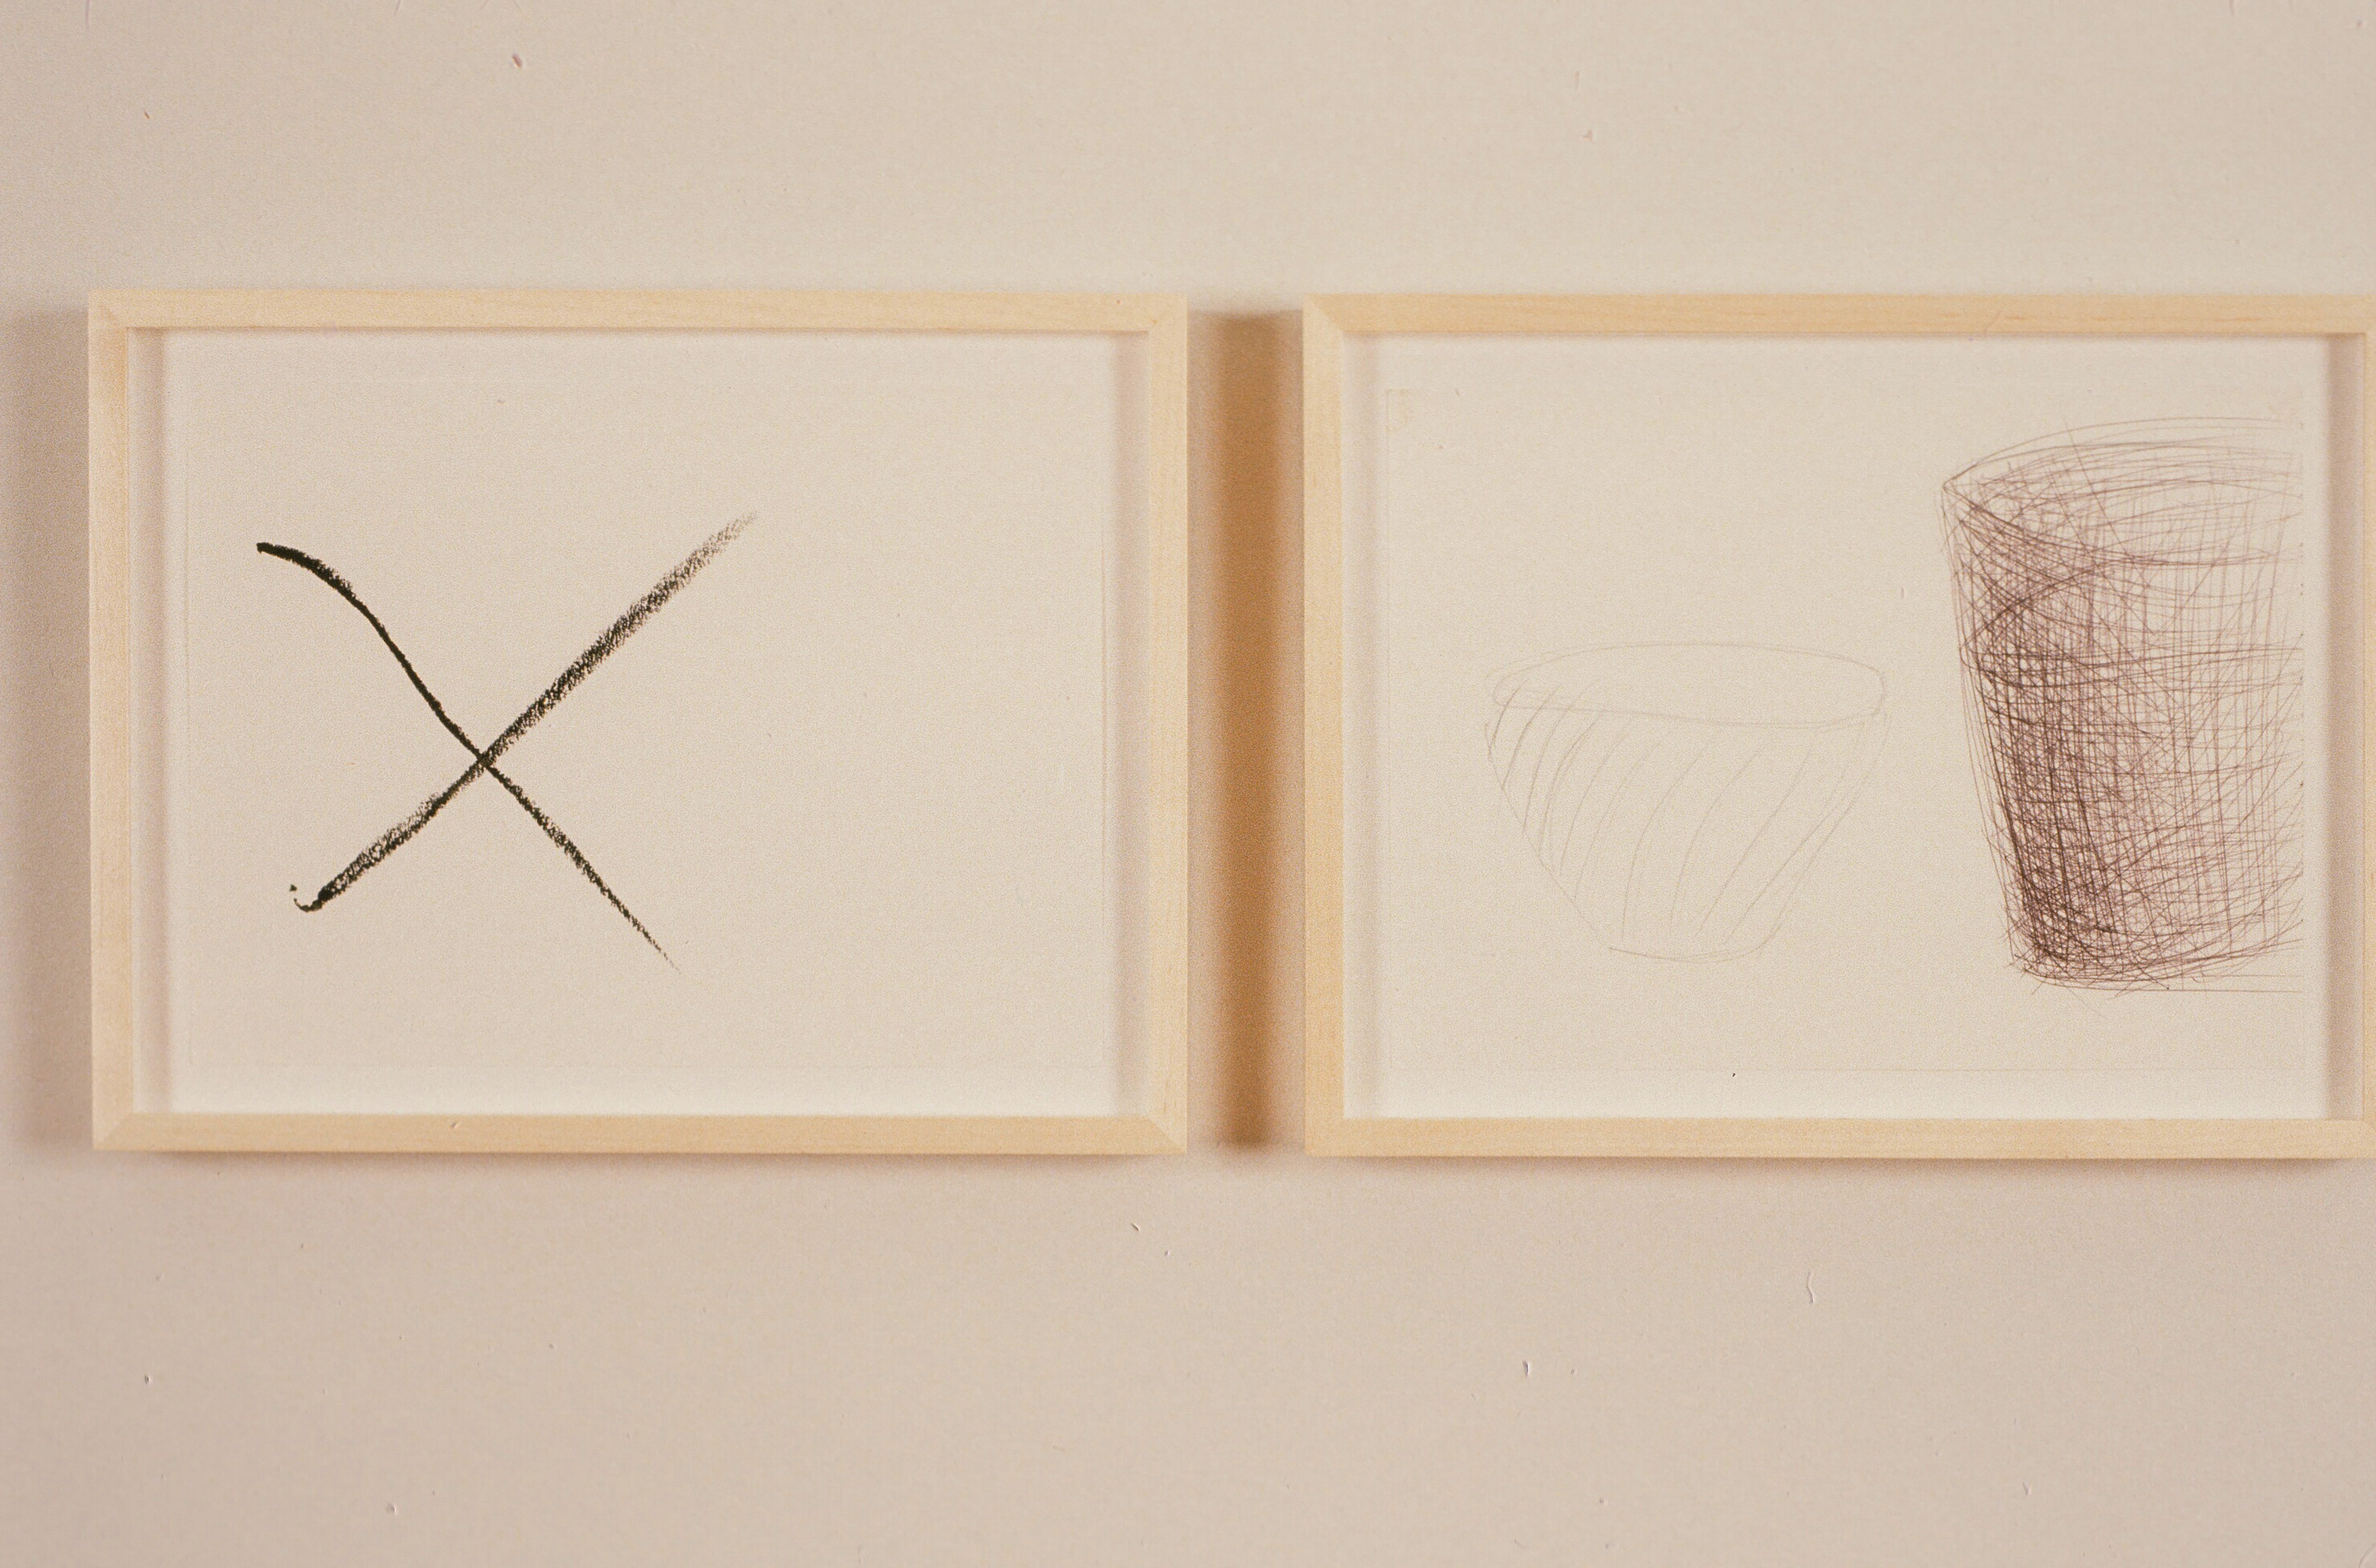 1991-Two Drawings - X and Dog Dishes